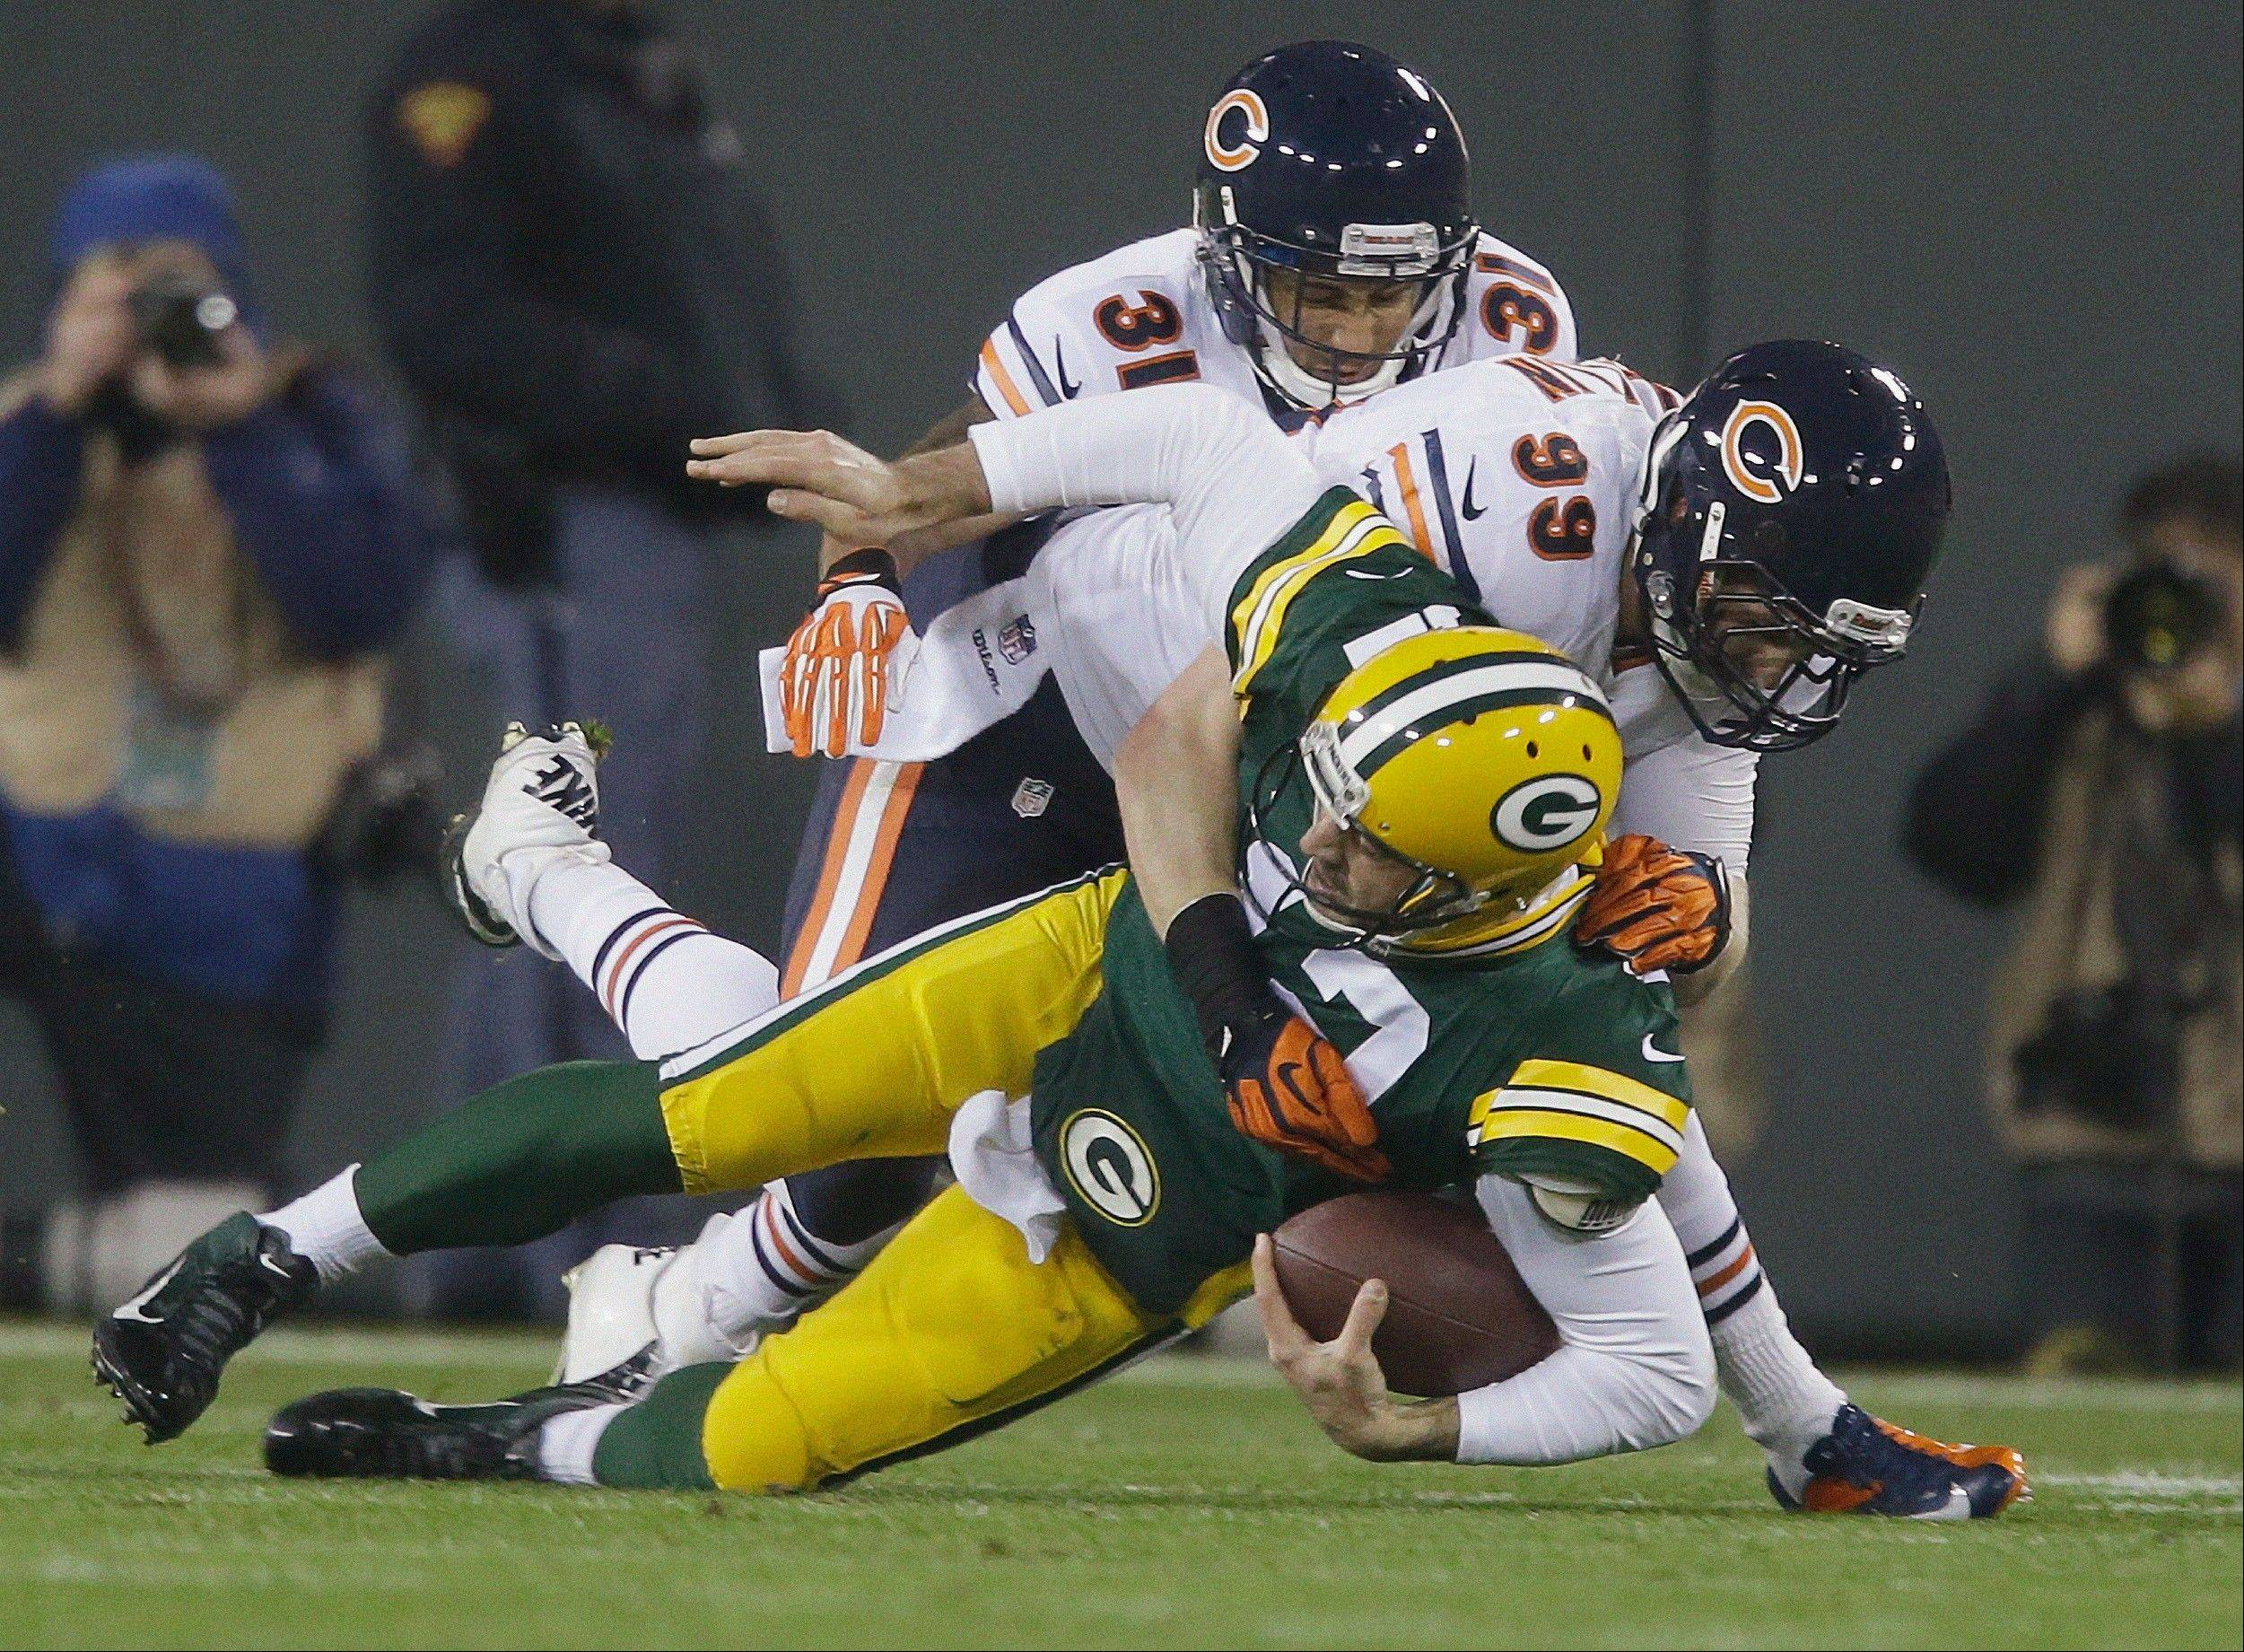 Green Bay Packers quarterback Aaron Rodgers is sacked by Chicago Bears� Shea McClellin (99) and Isaiah Frey (31) during the first half . Rodgers left the game after the play.